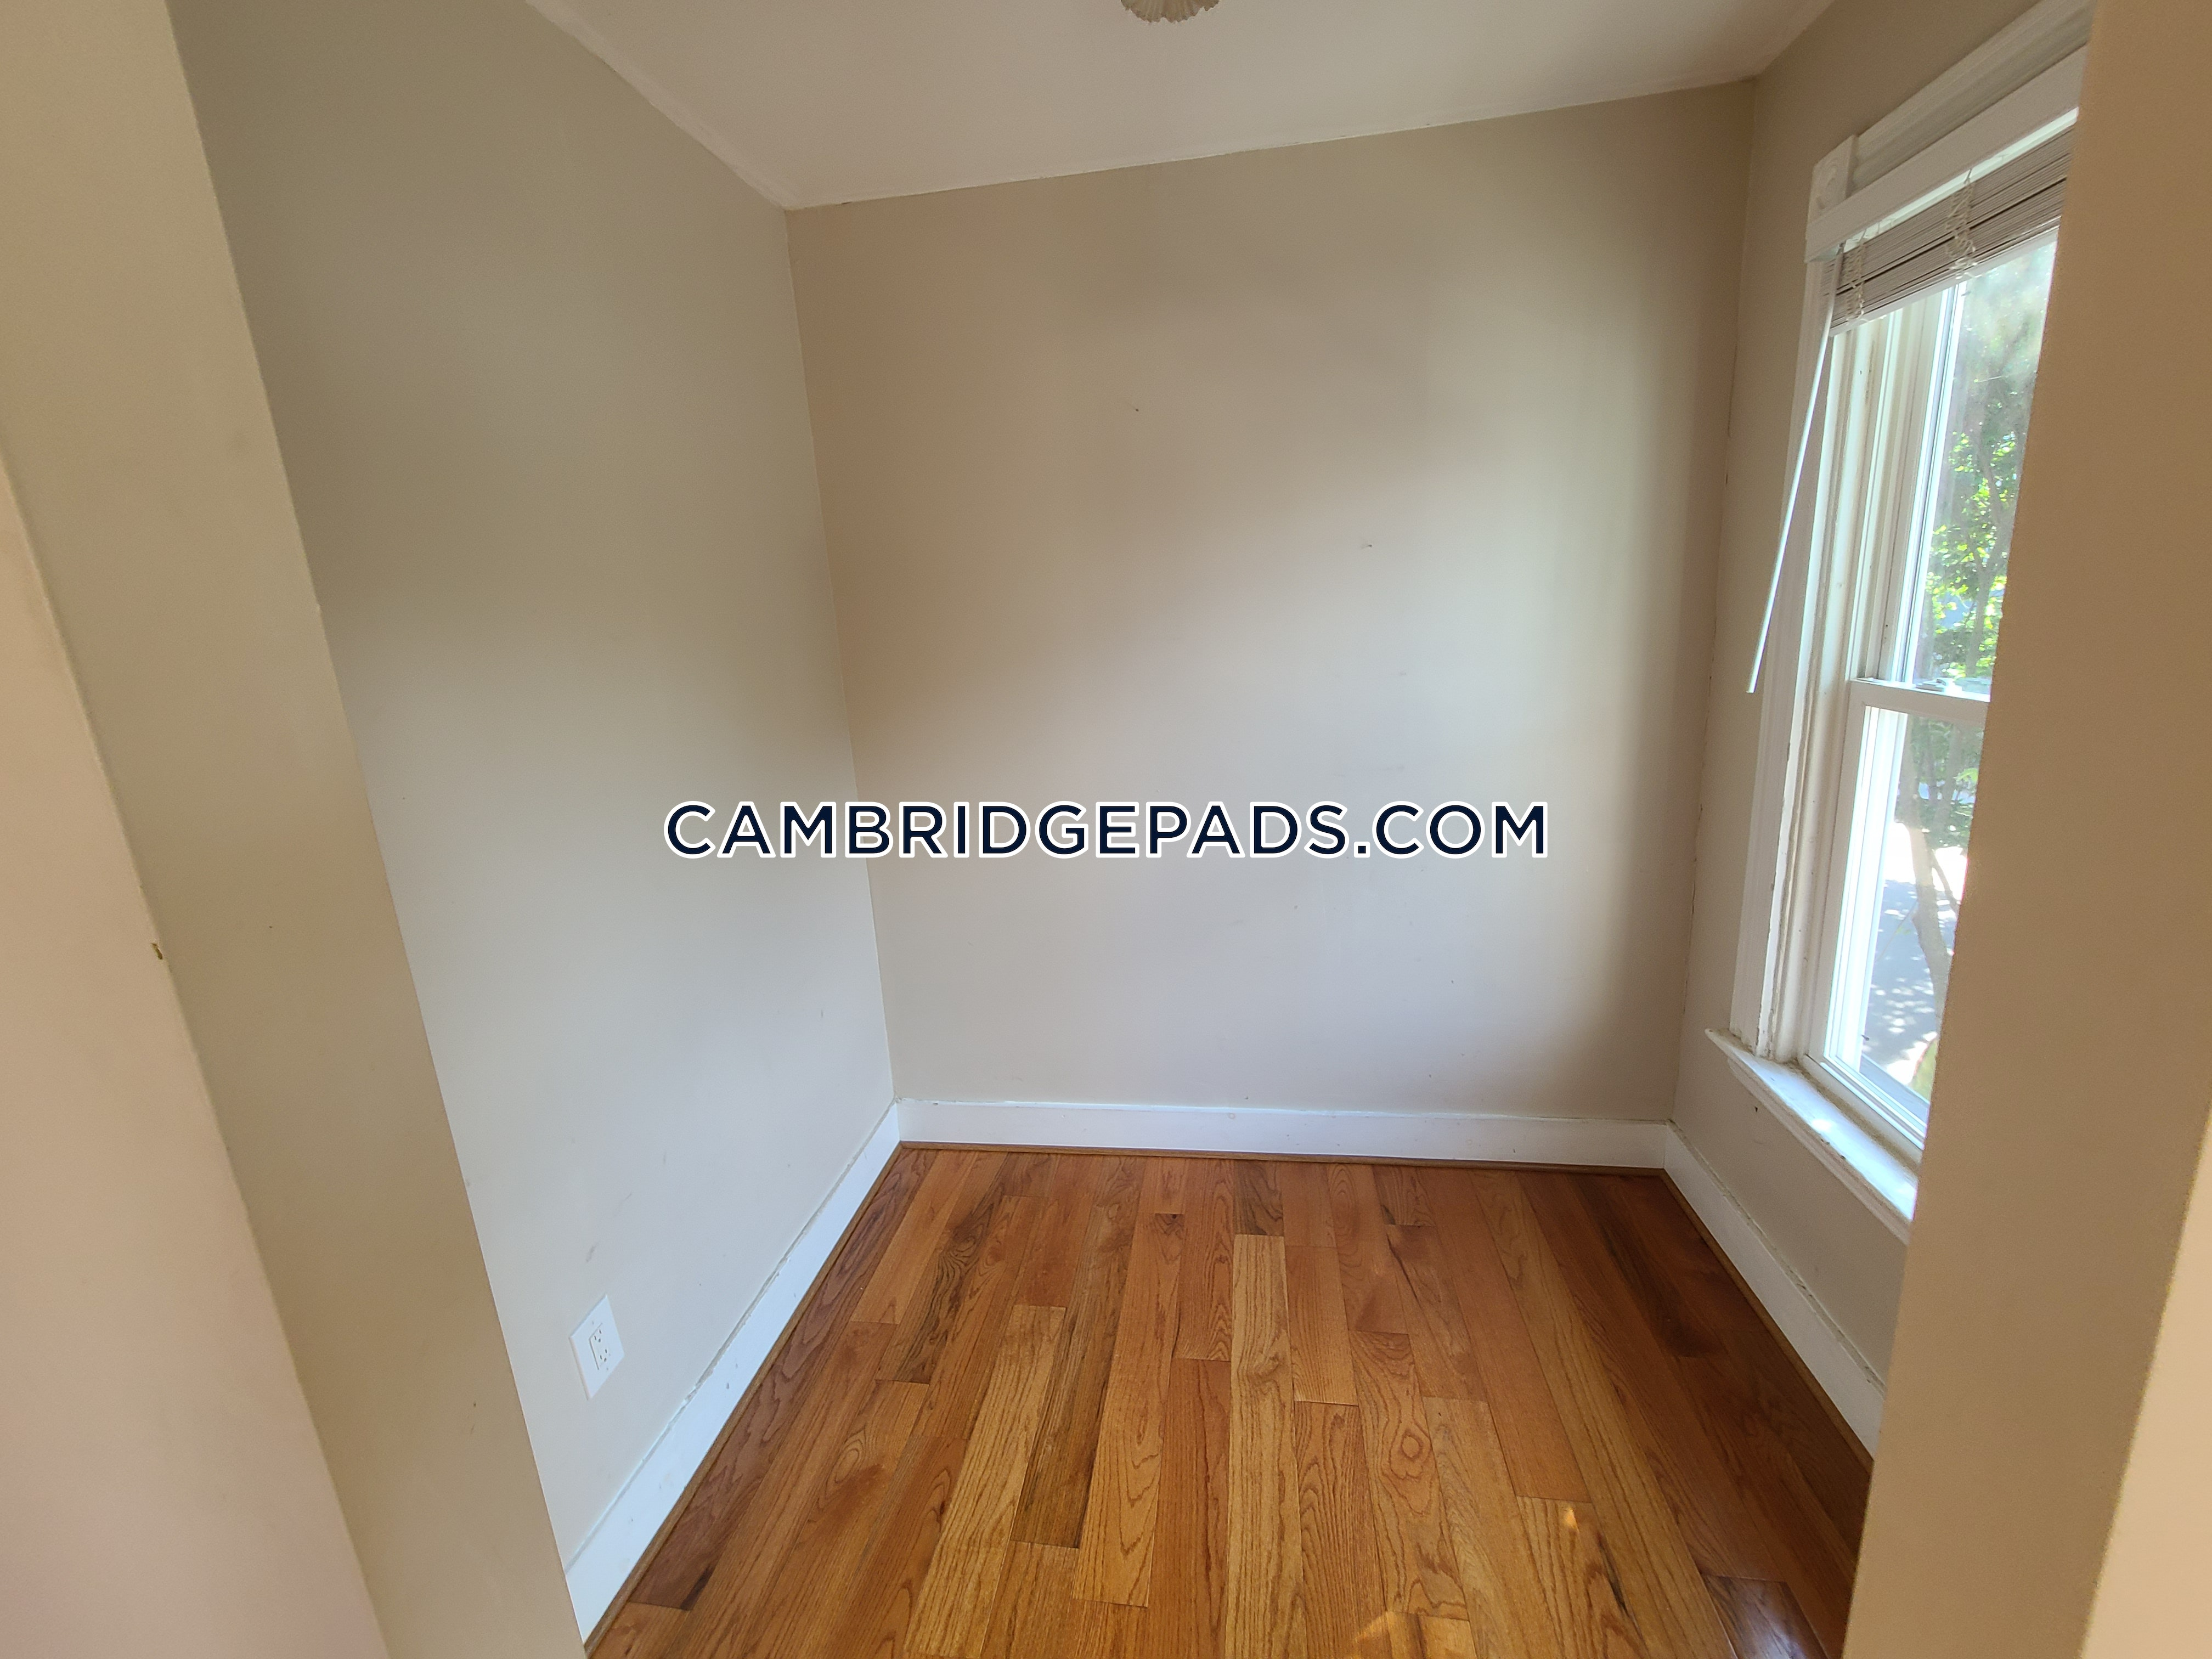 Cambridge - $7,000